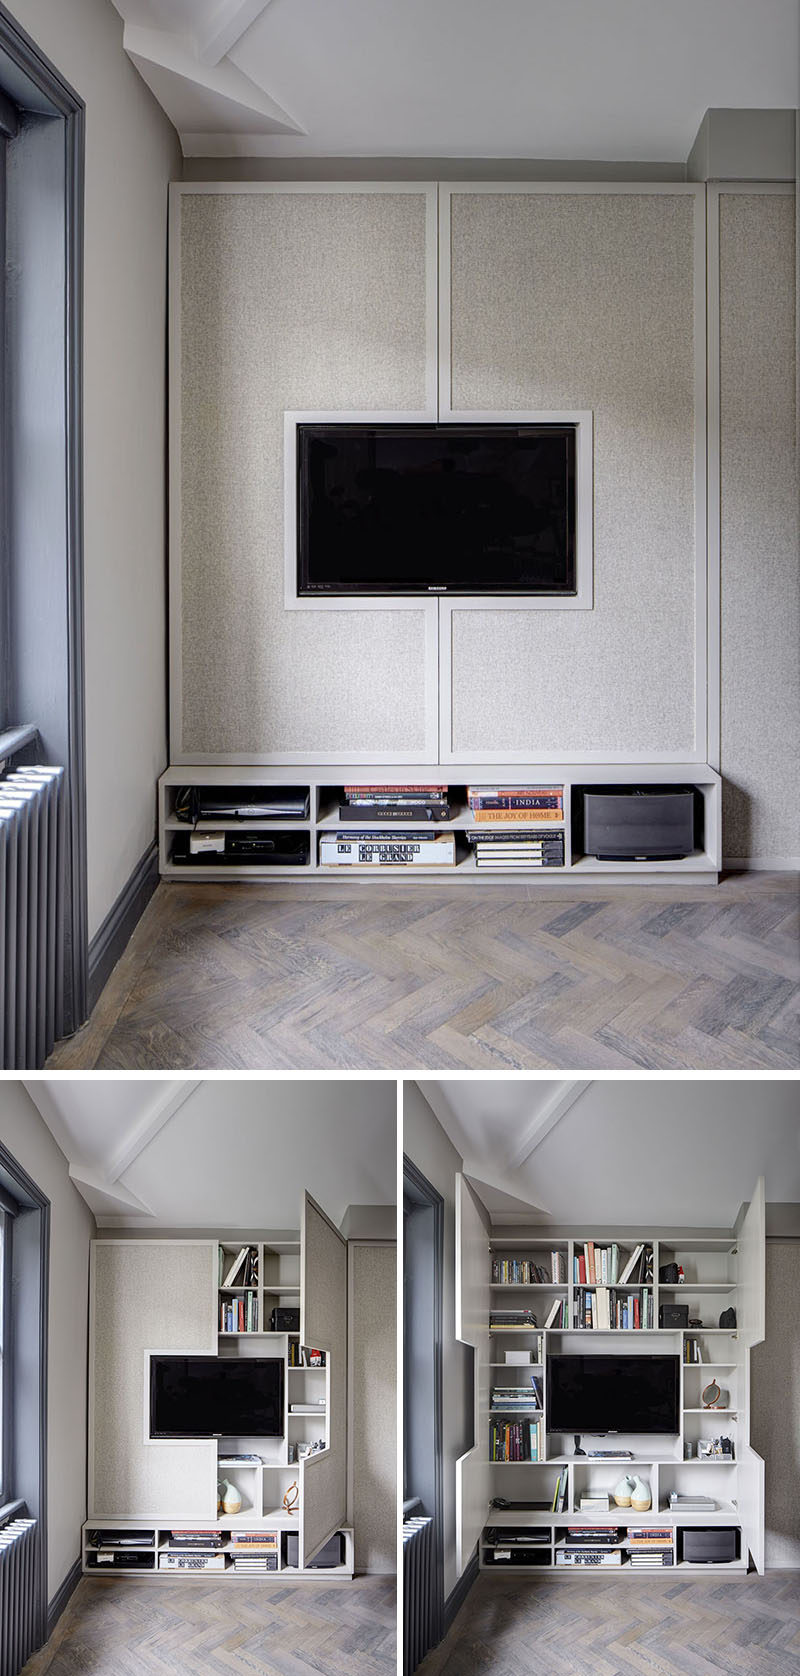 8 TV Wall Design Ideas For Your Living Room // Although this TV appears to be the only feature on this wall, two doors on either side of it open up to reveal walls full of hidden shelving.